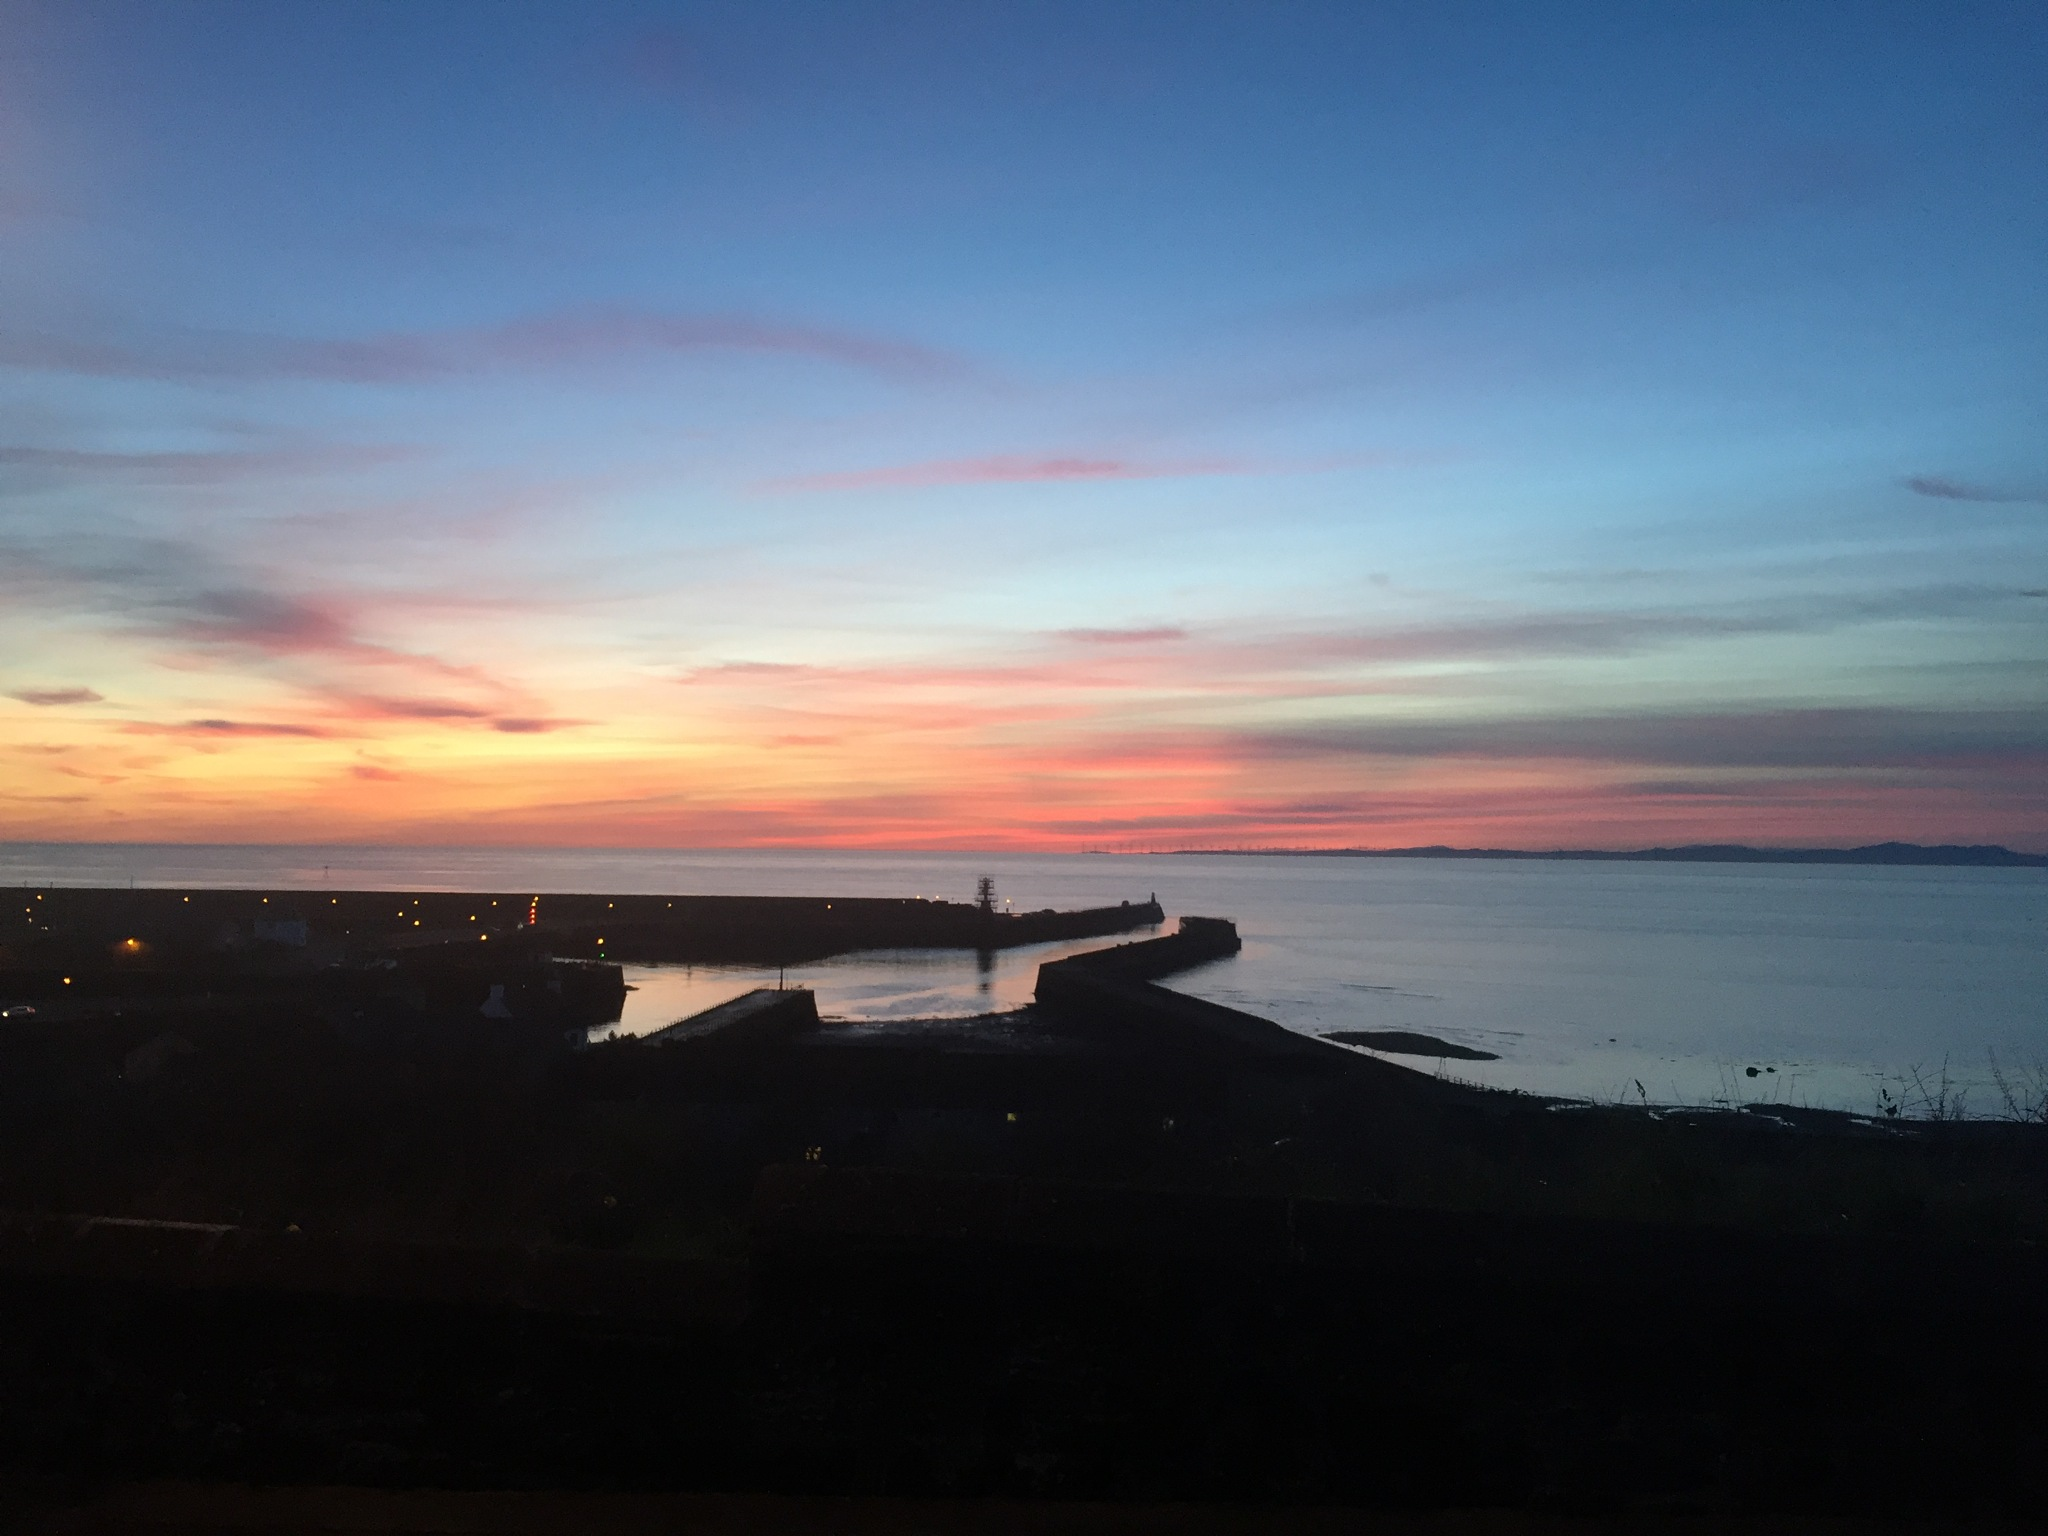 Sunset at Maryport Harbour by Owen Daniel